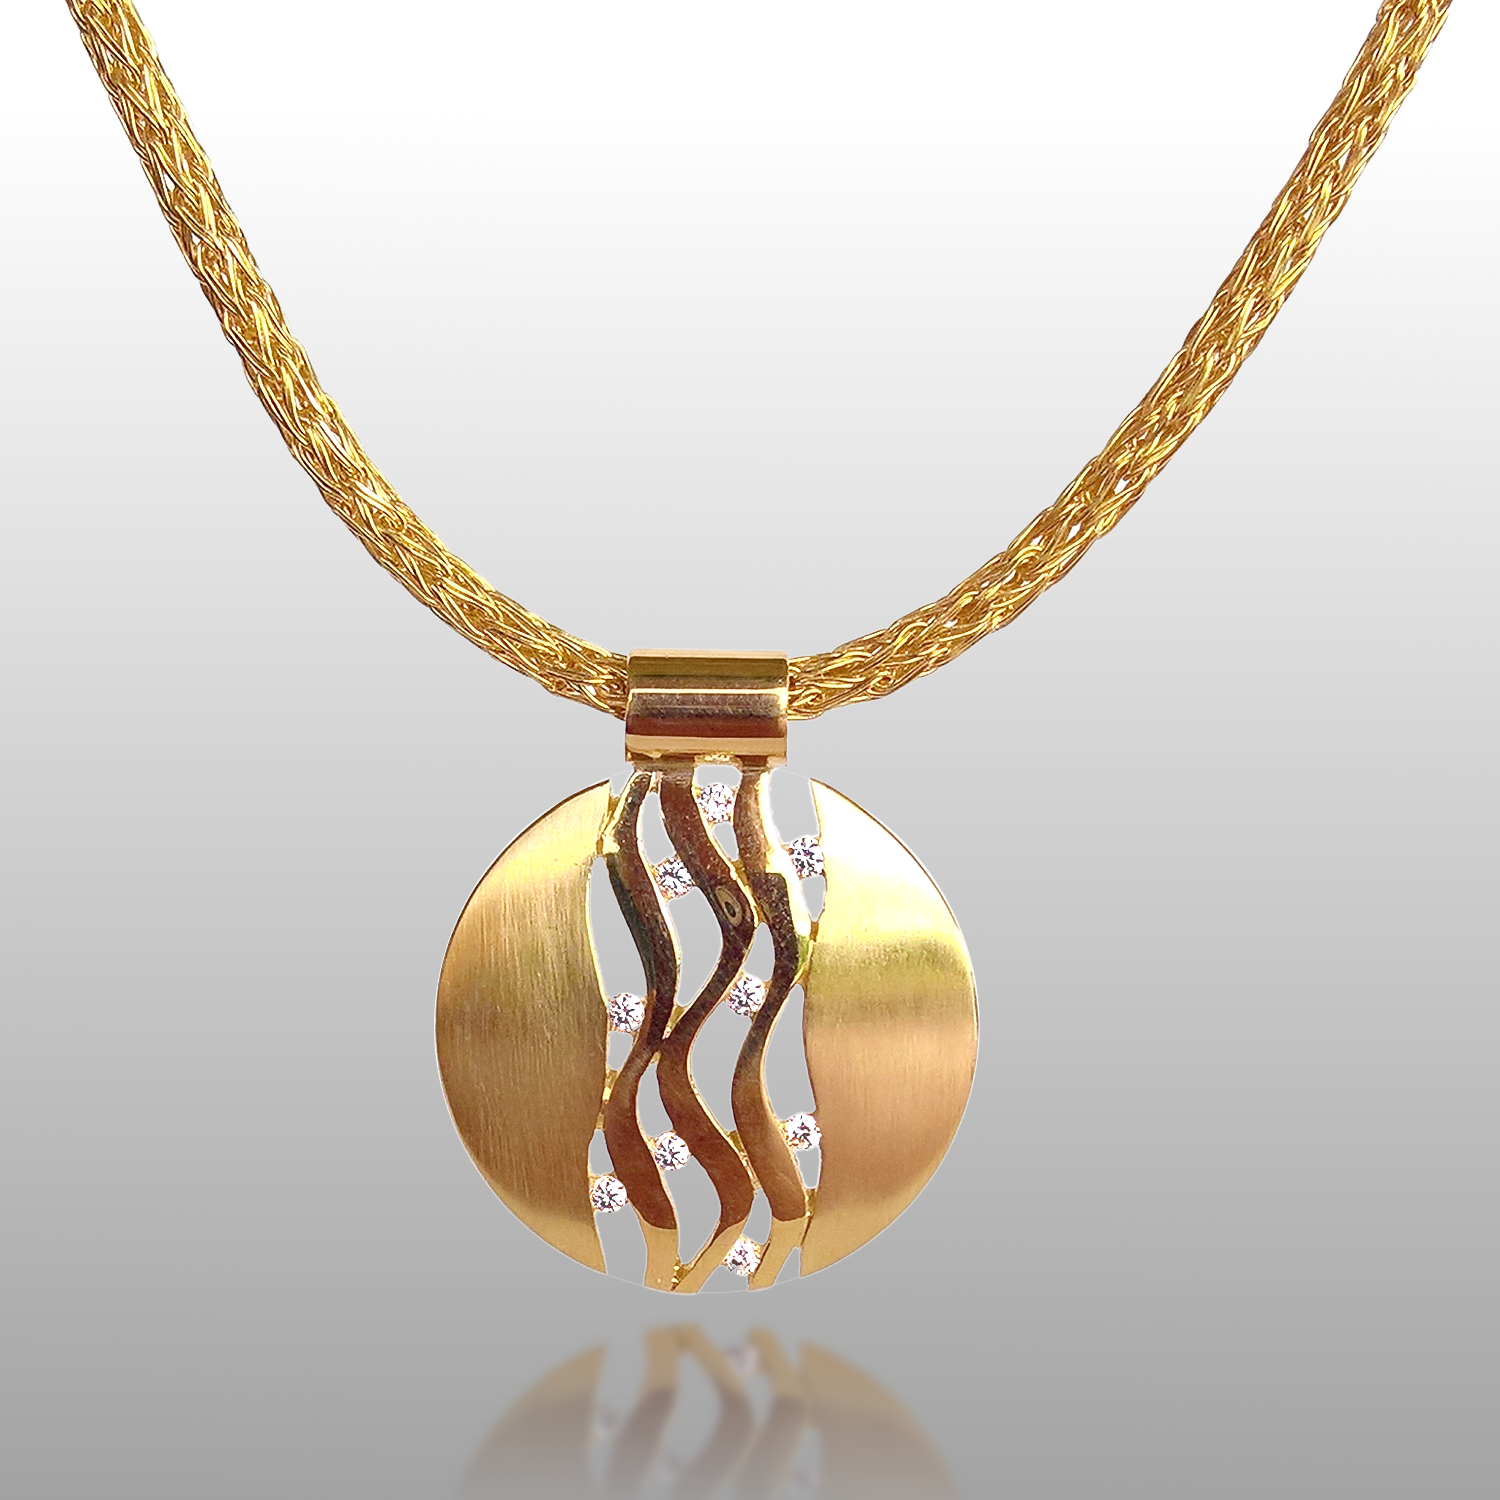 'Lamello' Wave Pendant in 18k Yellow, Rose or White Gold or Platinum with Diamonds by Pratima Design Fine Art Jewelry